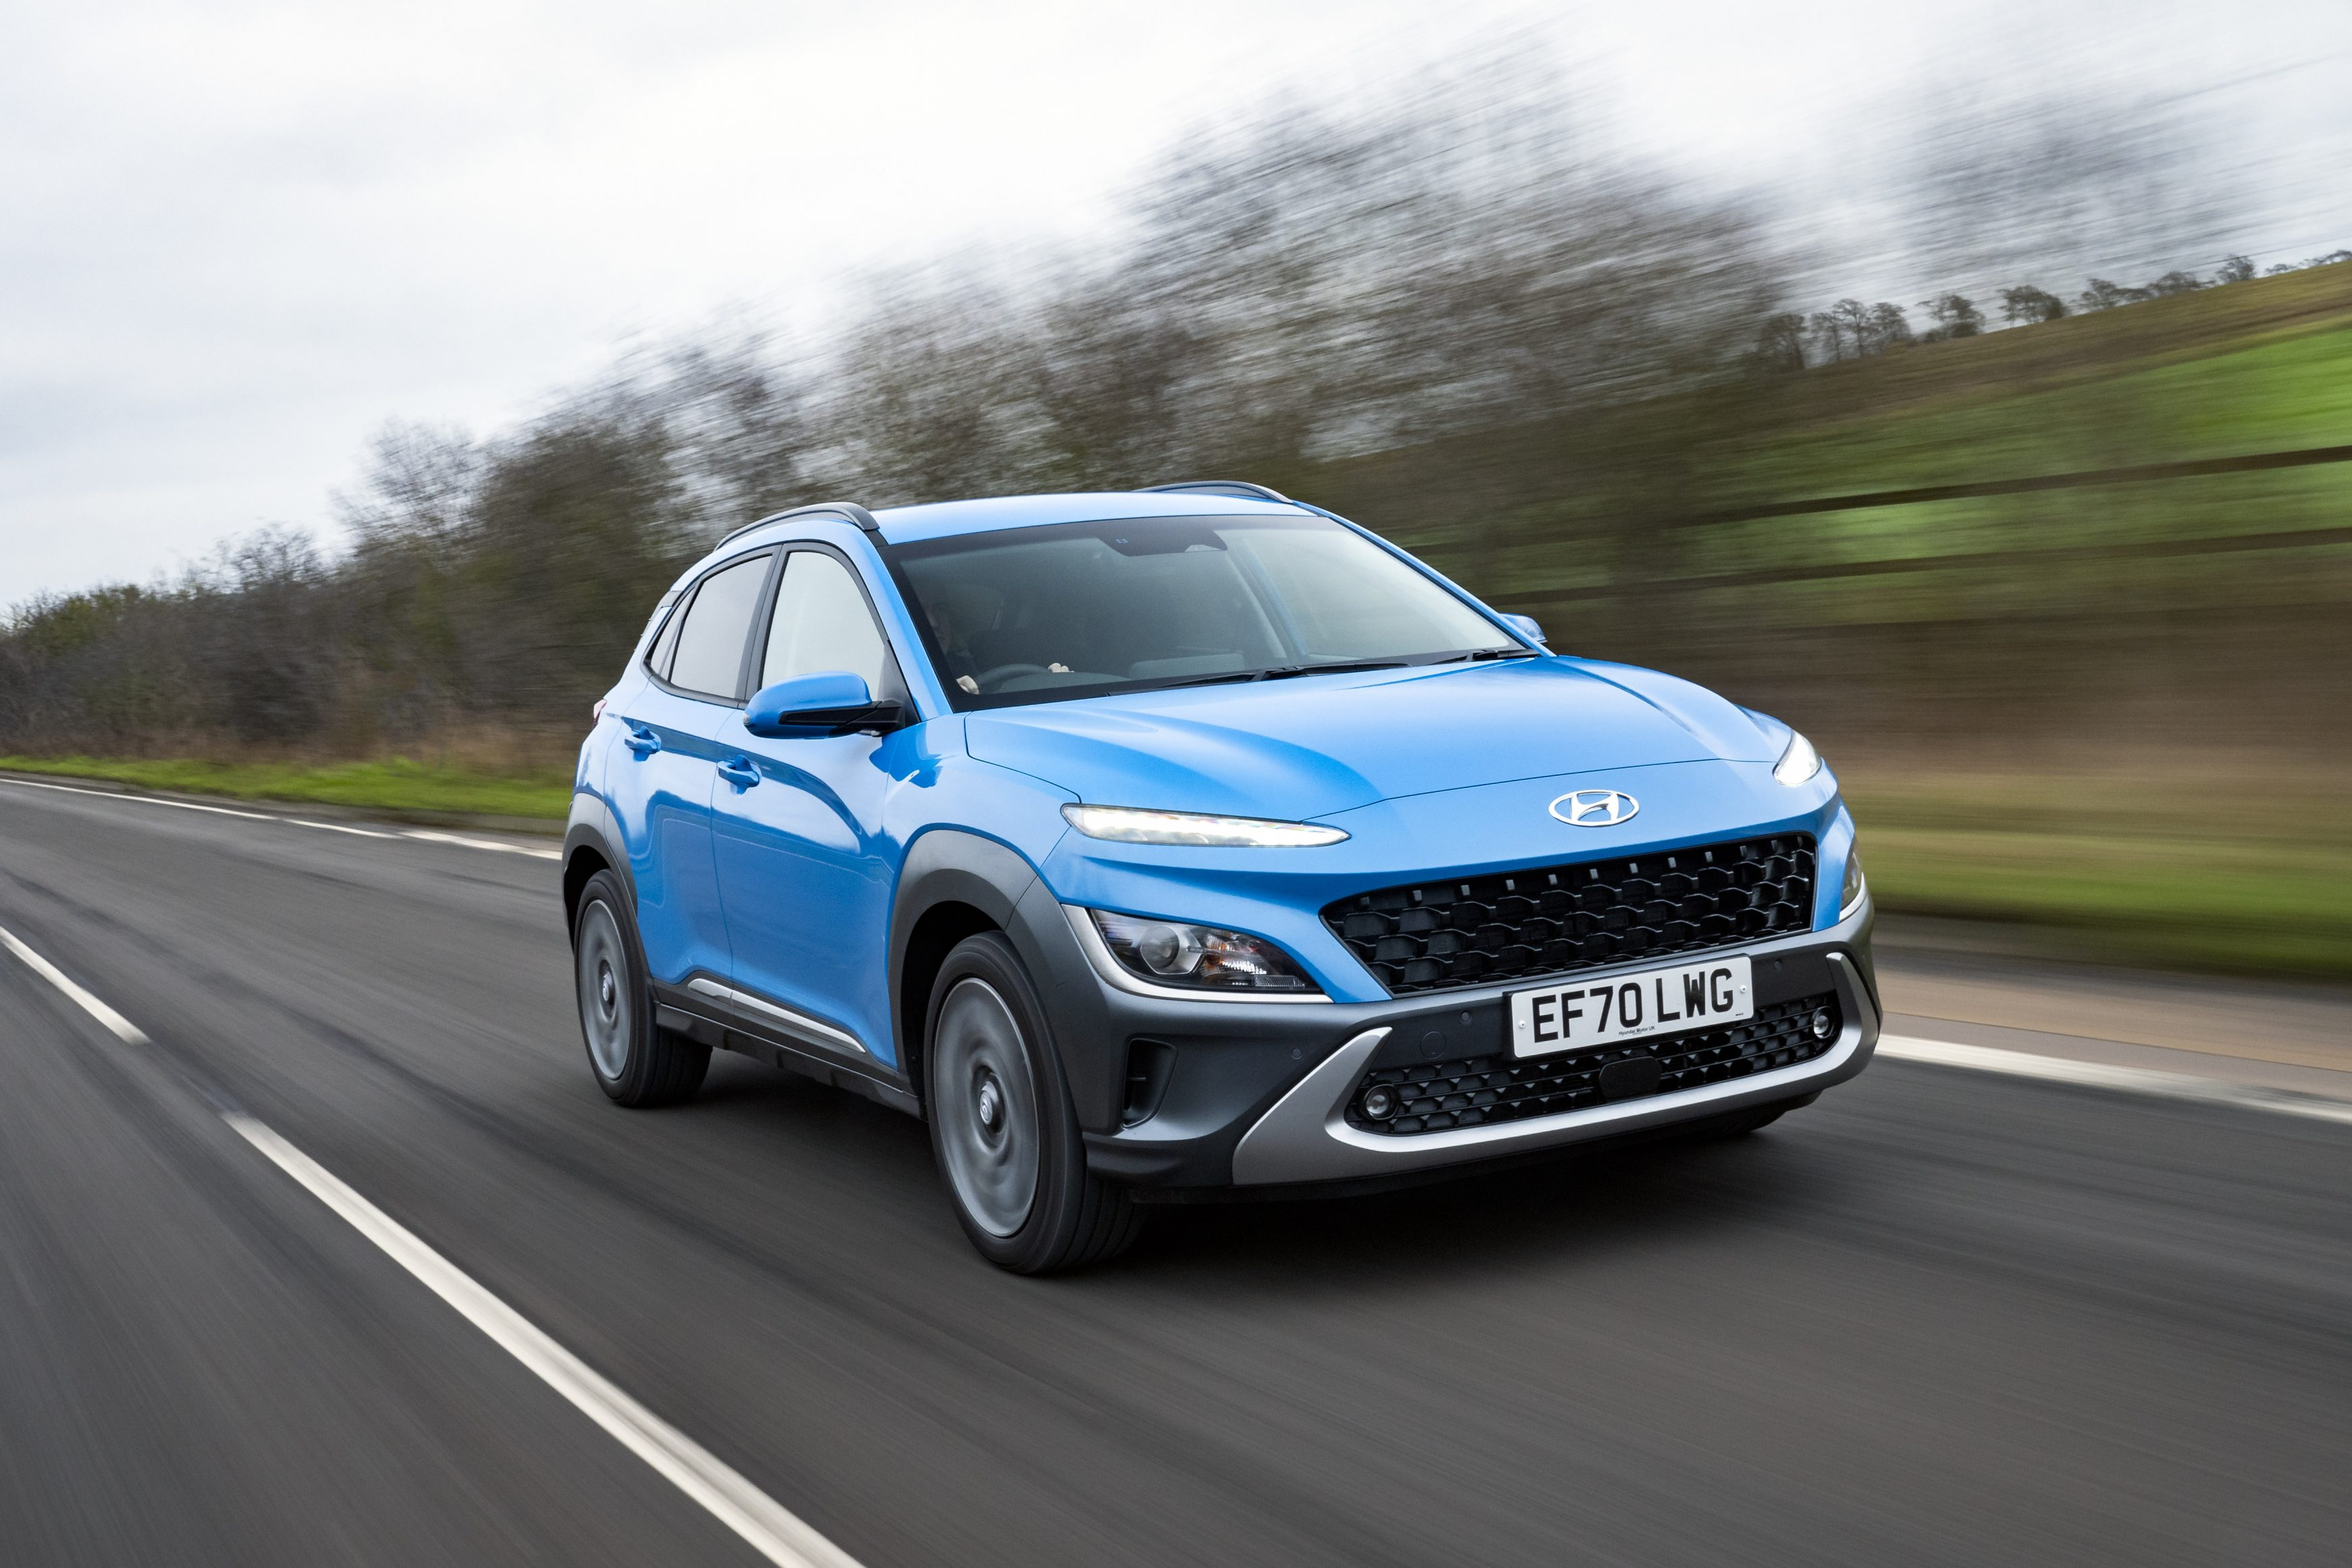 The 2021 Hyundai Kona Hybrid is quicker than the combustion fuel version